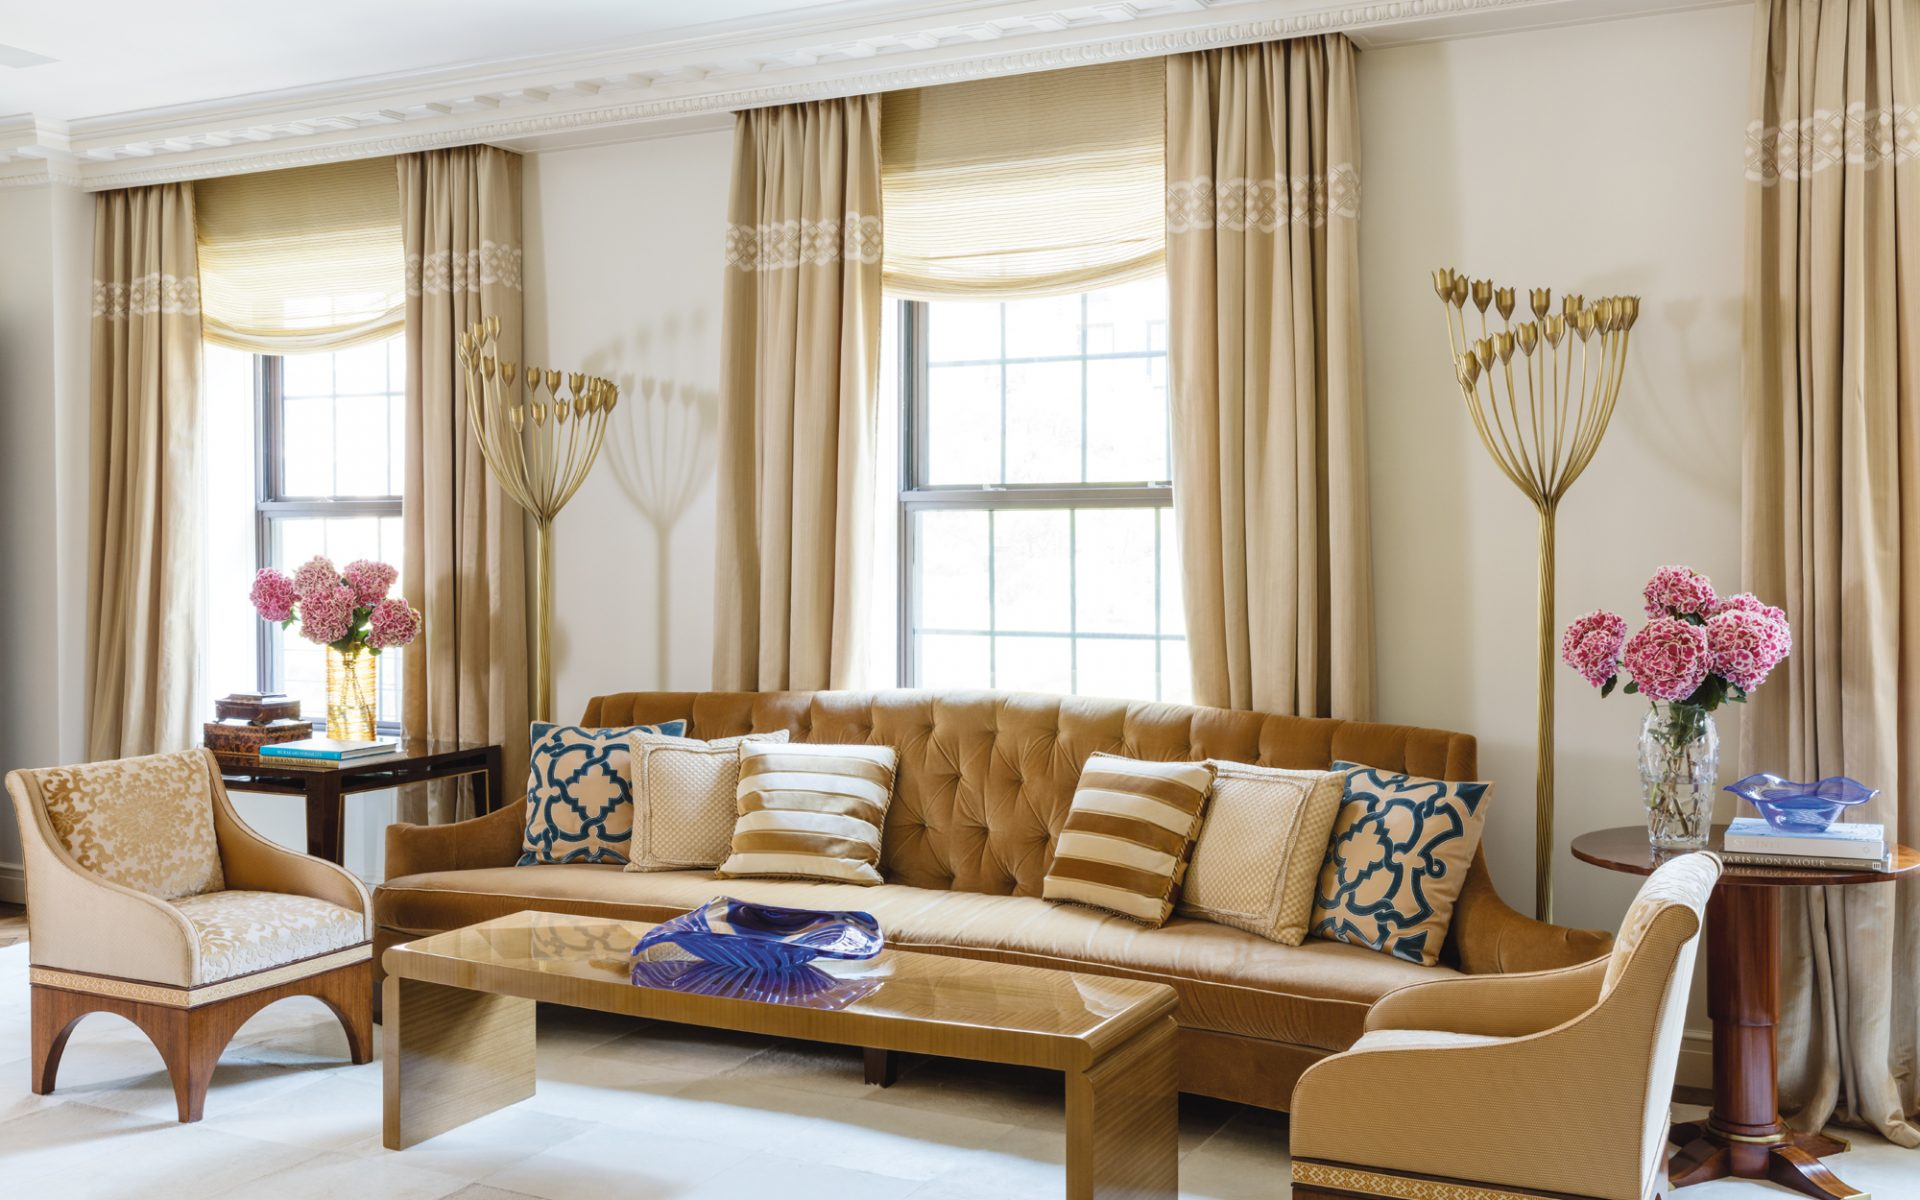 The Gold Hued Living Room Is Furnished With A Number Of Contemporary Pieces Inspired By Vintage Forms These Include Sofa And Armchairs Designed